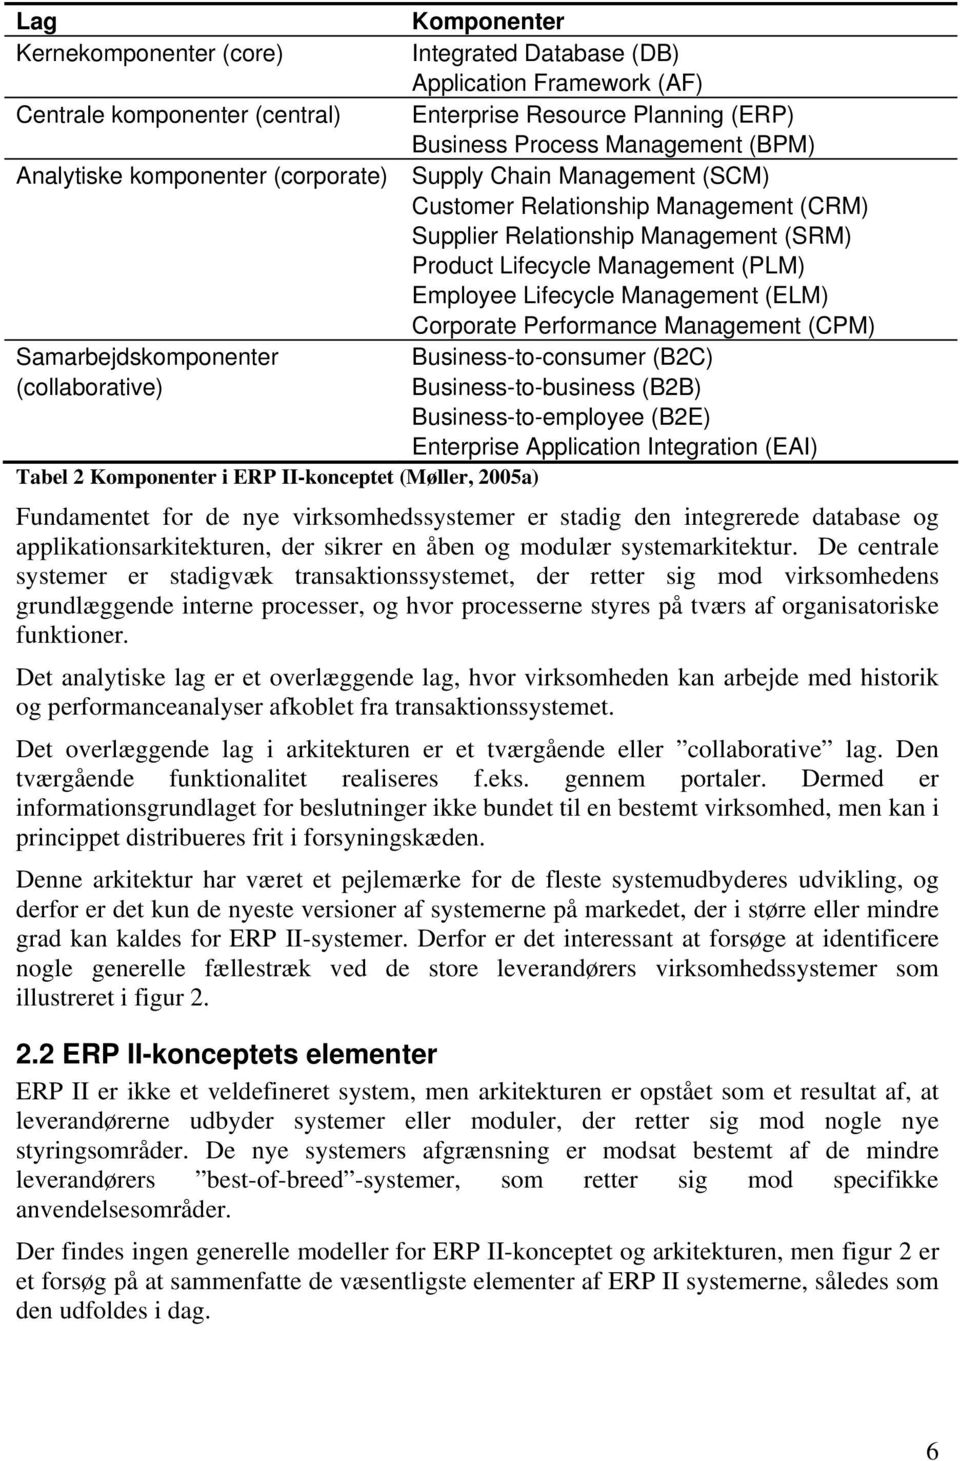 Management (ELM) Corporate Performance Management (CPM) Samarbejdskomponenter Business-to-consumer (B2C) (collaborative) Business-to-business (B2B) Business-to-employee (B2E) Enterprise Application